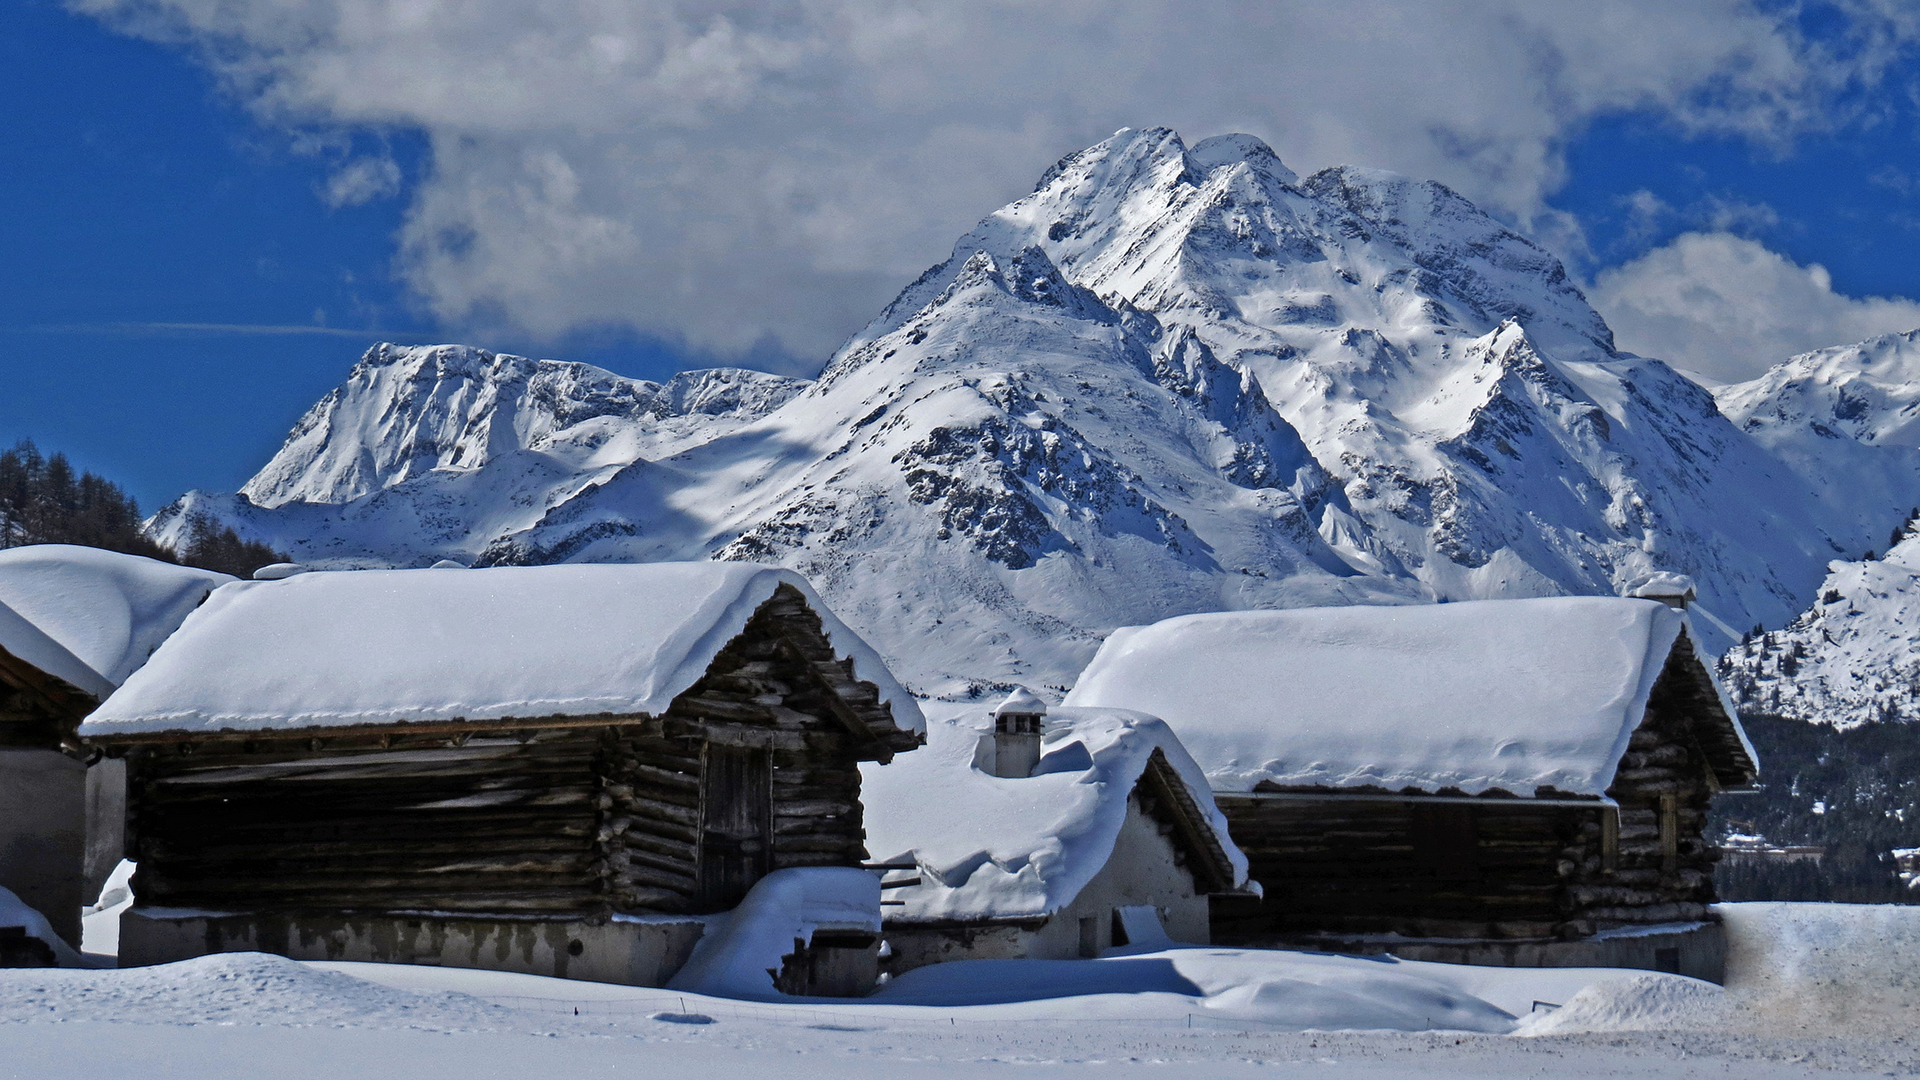 Mountain Cabin Wallpaper 1920x1080